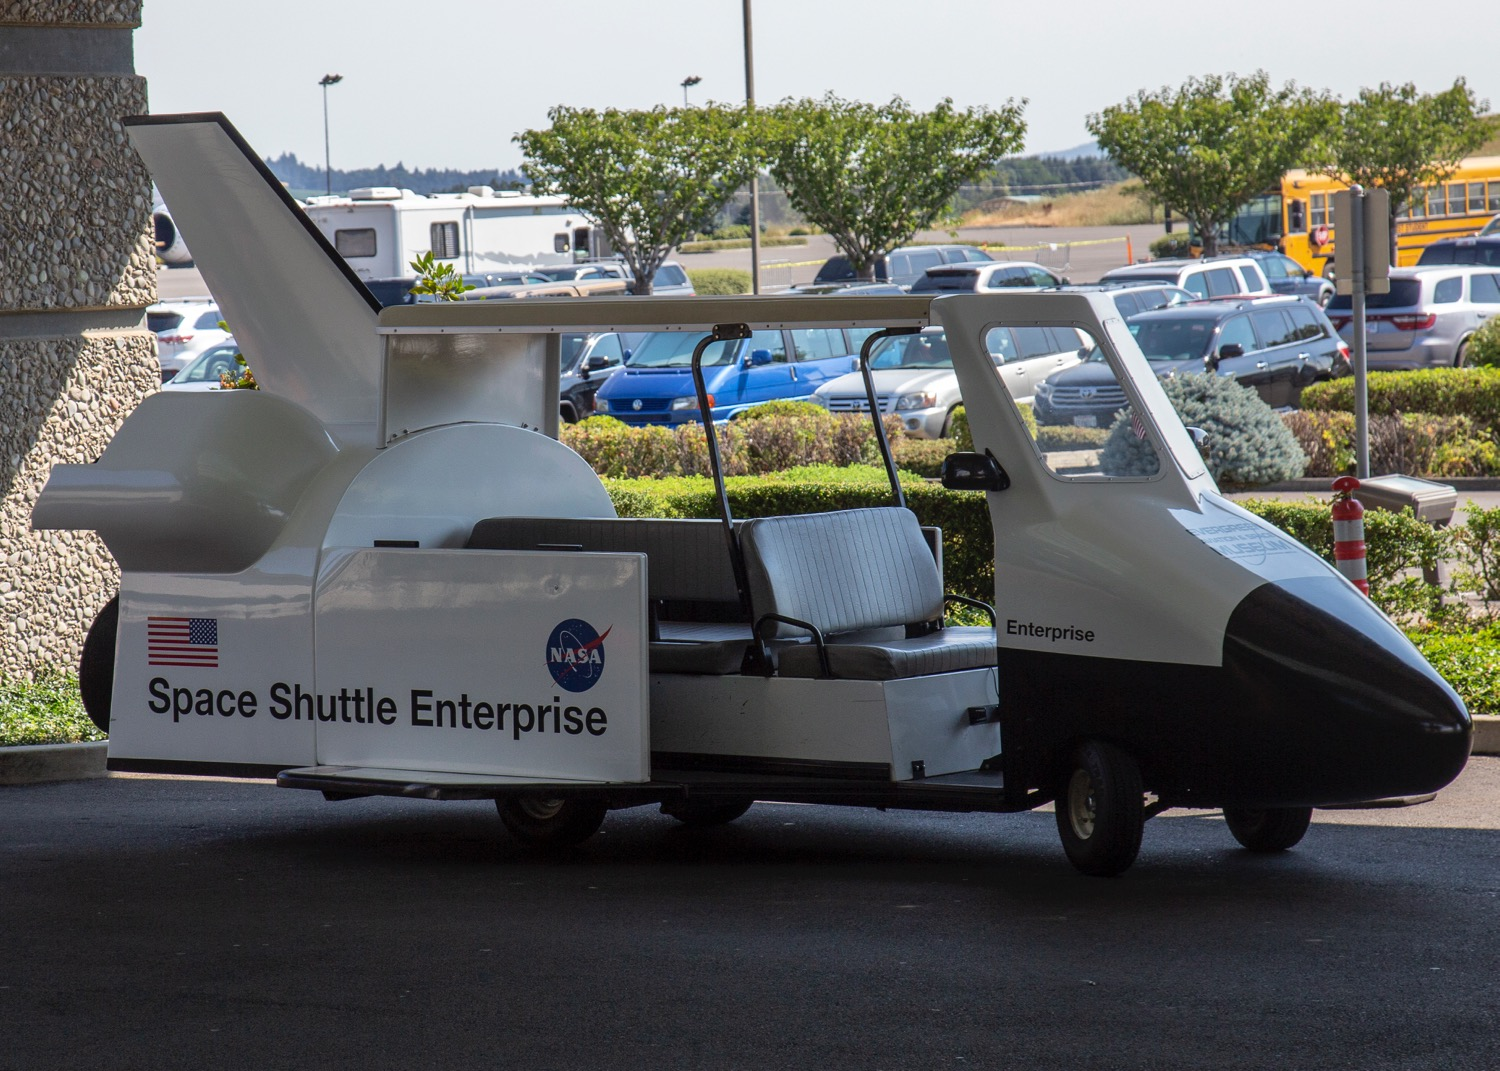 Even the shuttle was in theme...